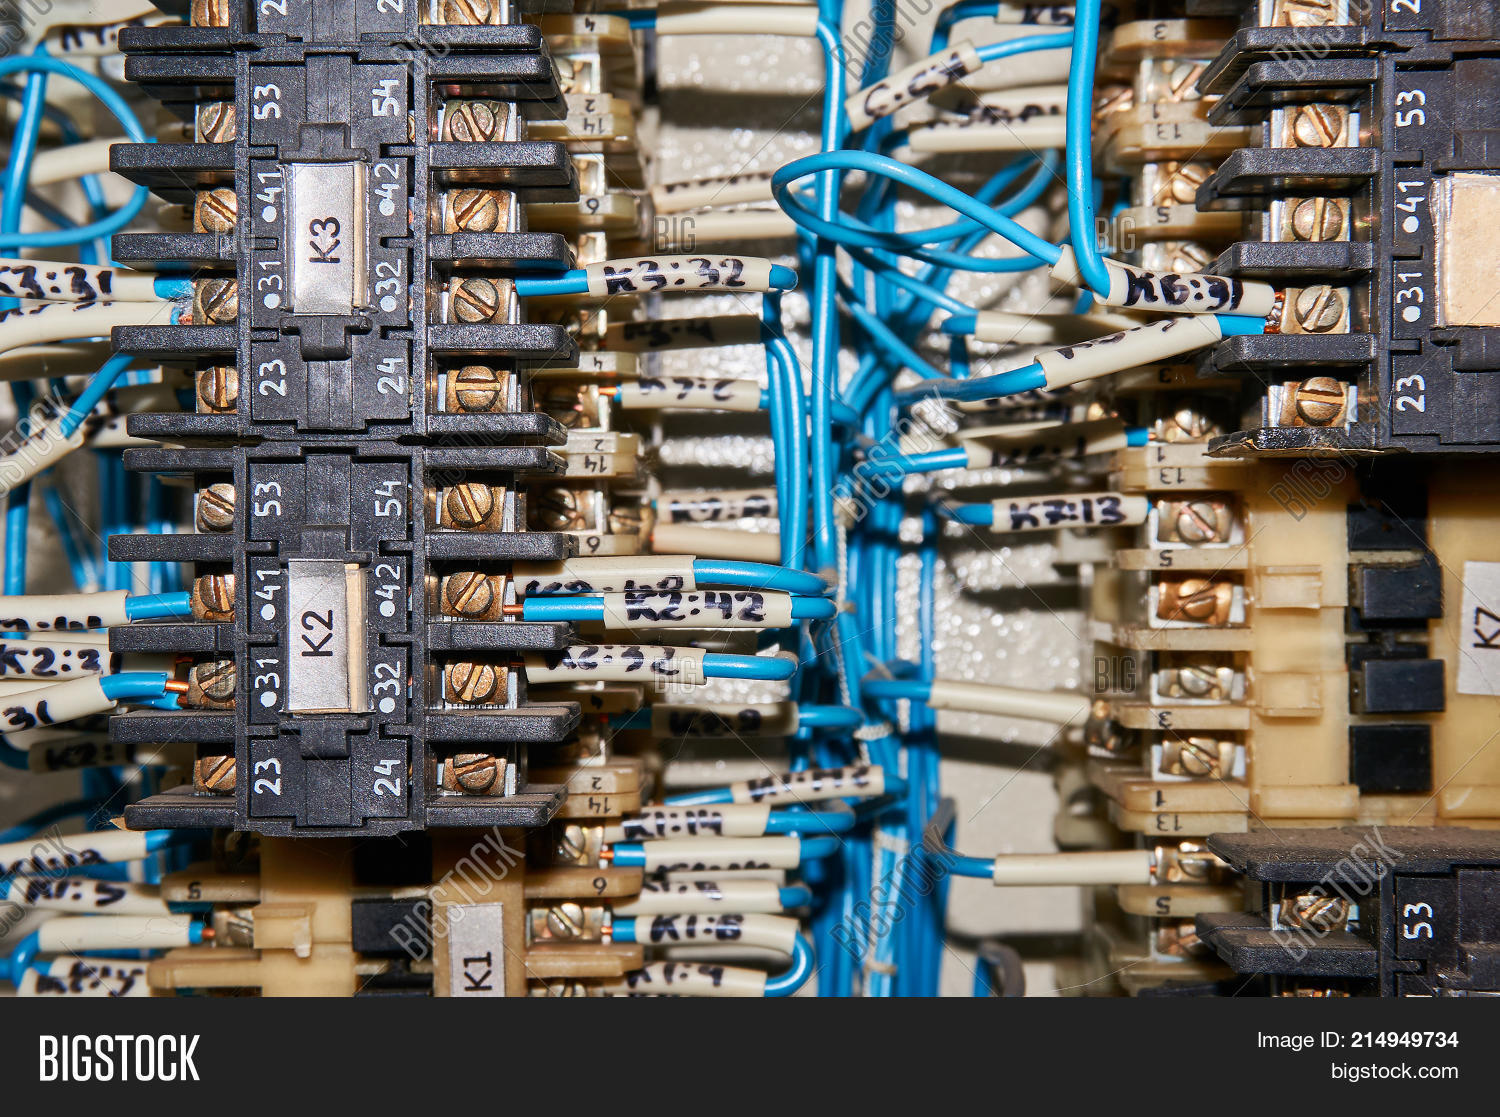 Some Electrical Relay Image Photo Free Trial Bigstock Wiring A Base Is Mounted On The Mounting Panel Relays Inserted In Or